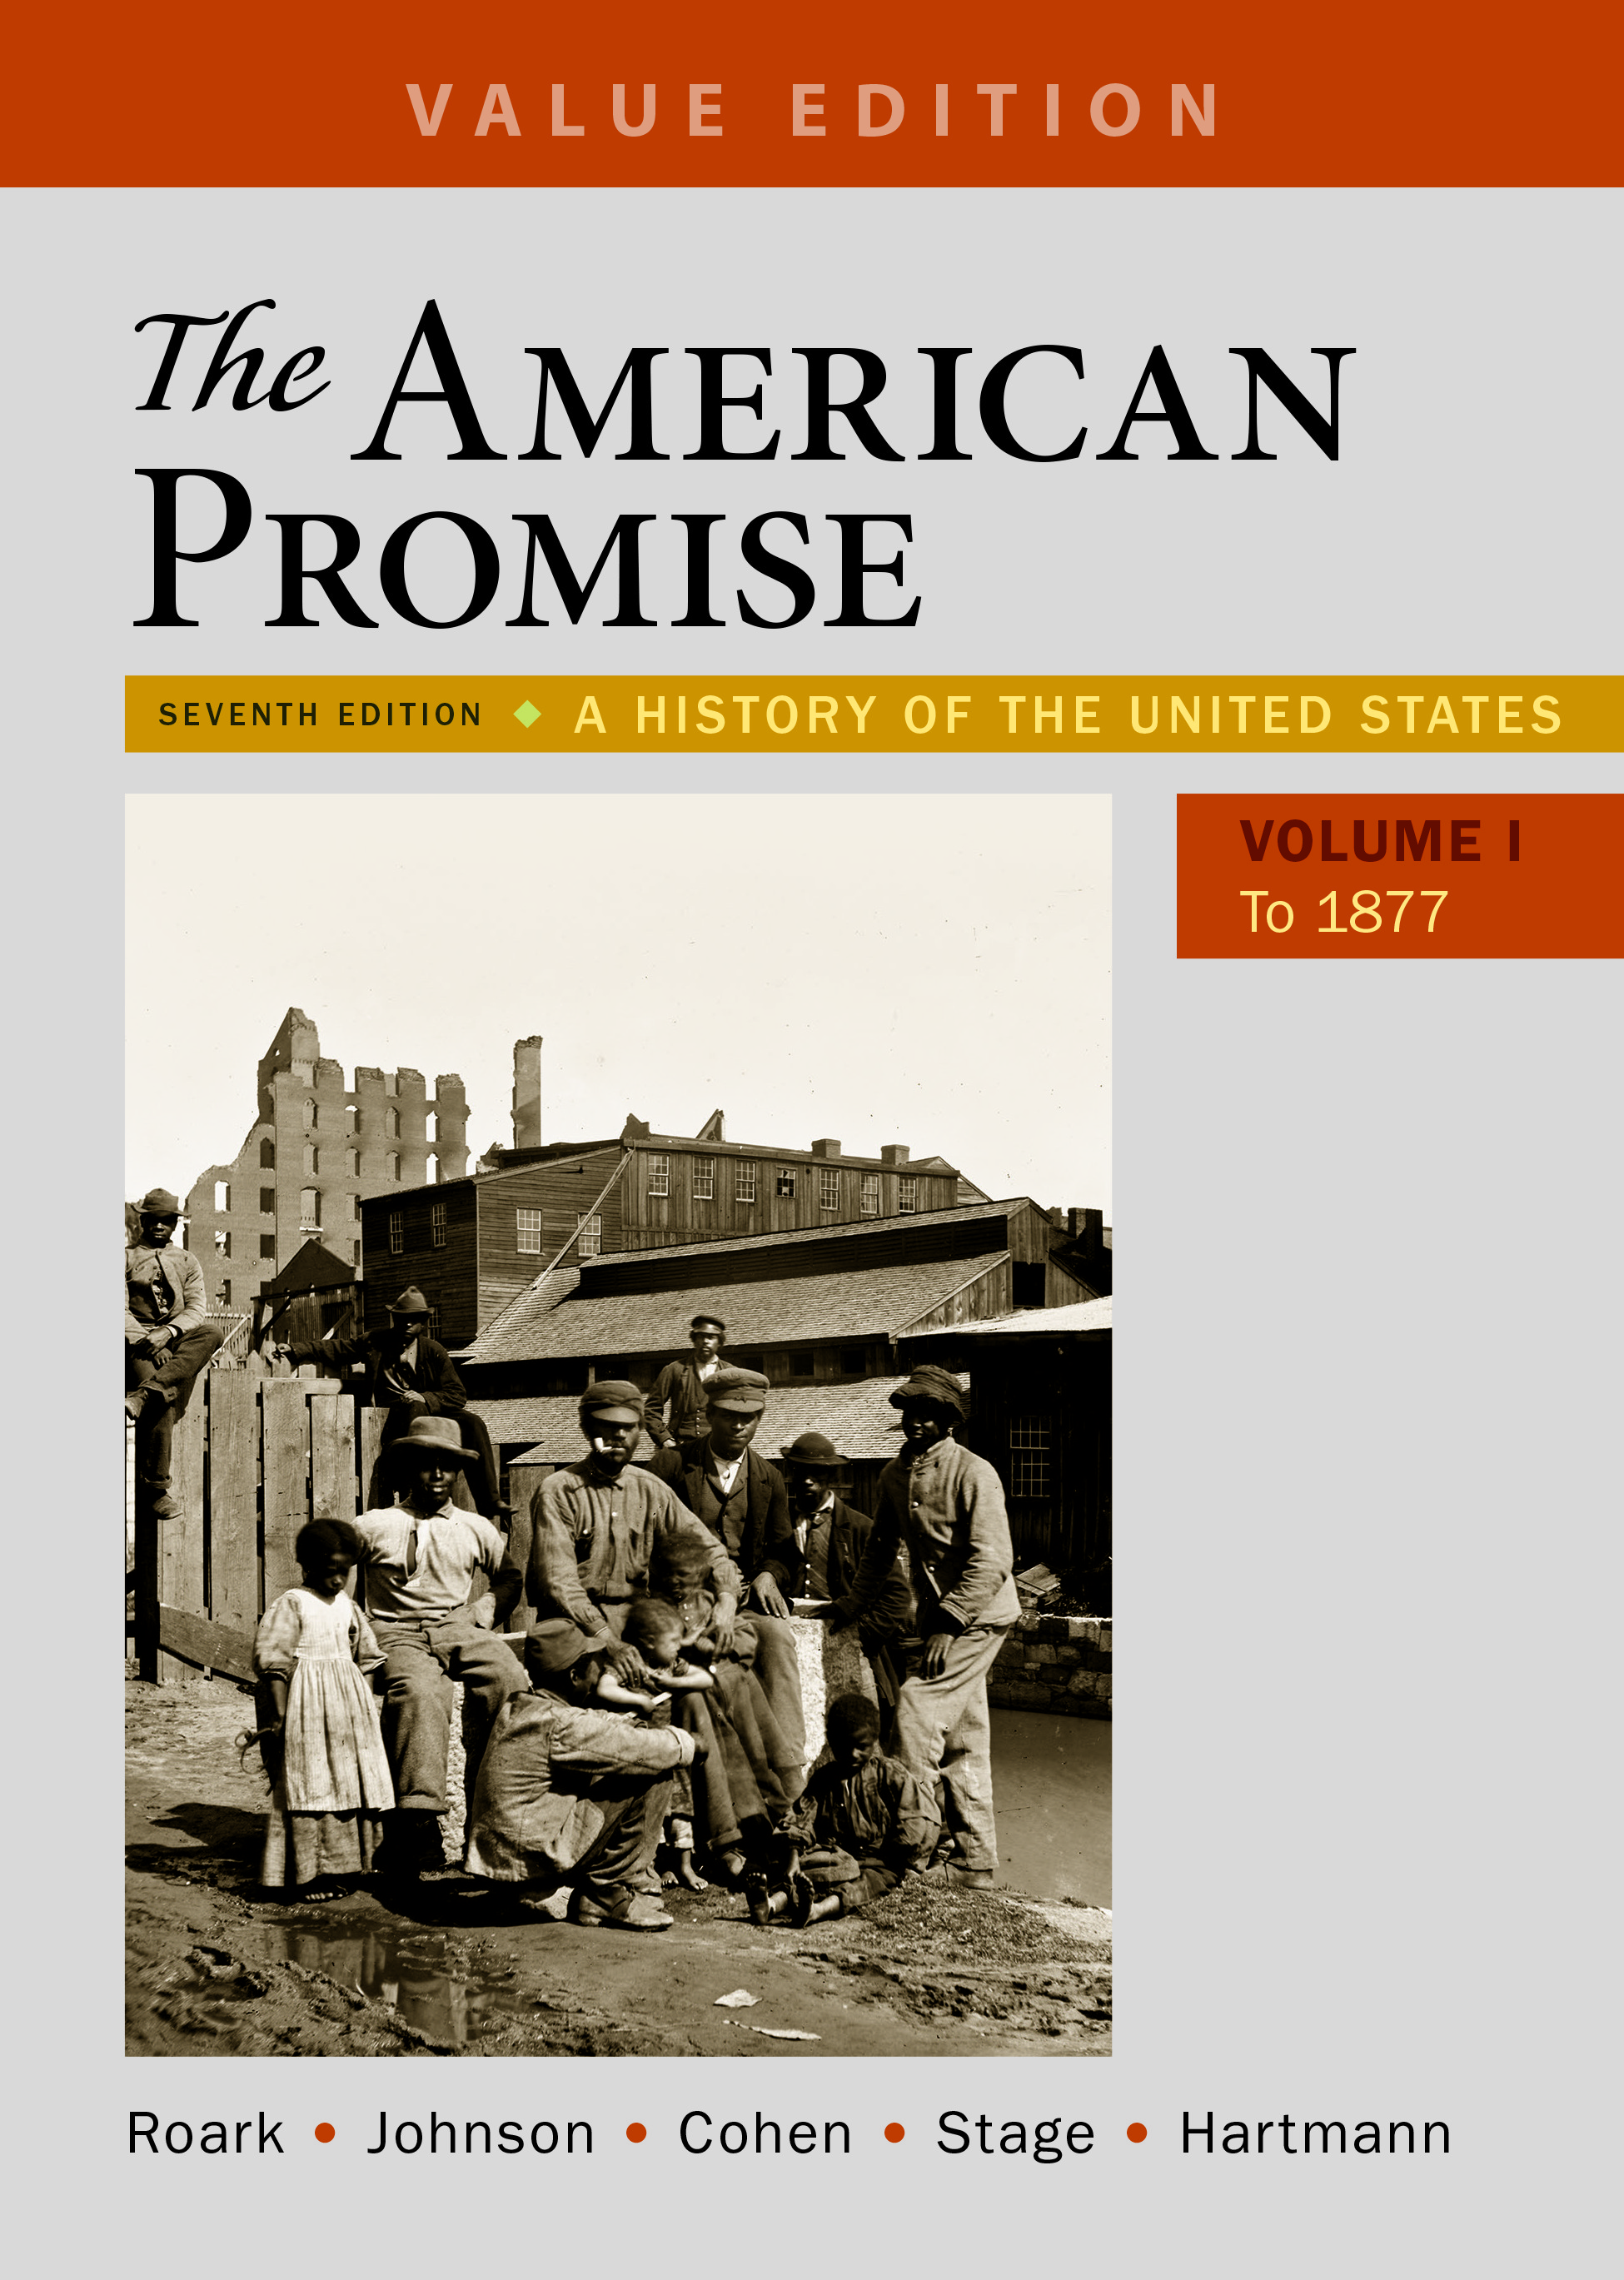 american promise The american promise, value edition, has long been a favorite with students who value the text's readability, clear chronology, and lively voices of ordinary americans, all in a portable format the value edition includes the full narrative accompanied by a 2-color map program and the rich instructor resources of the parent text made available at an affordable price.